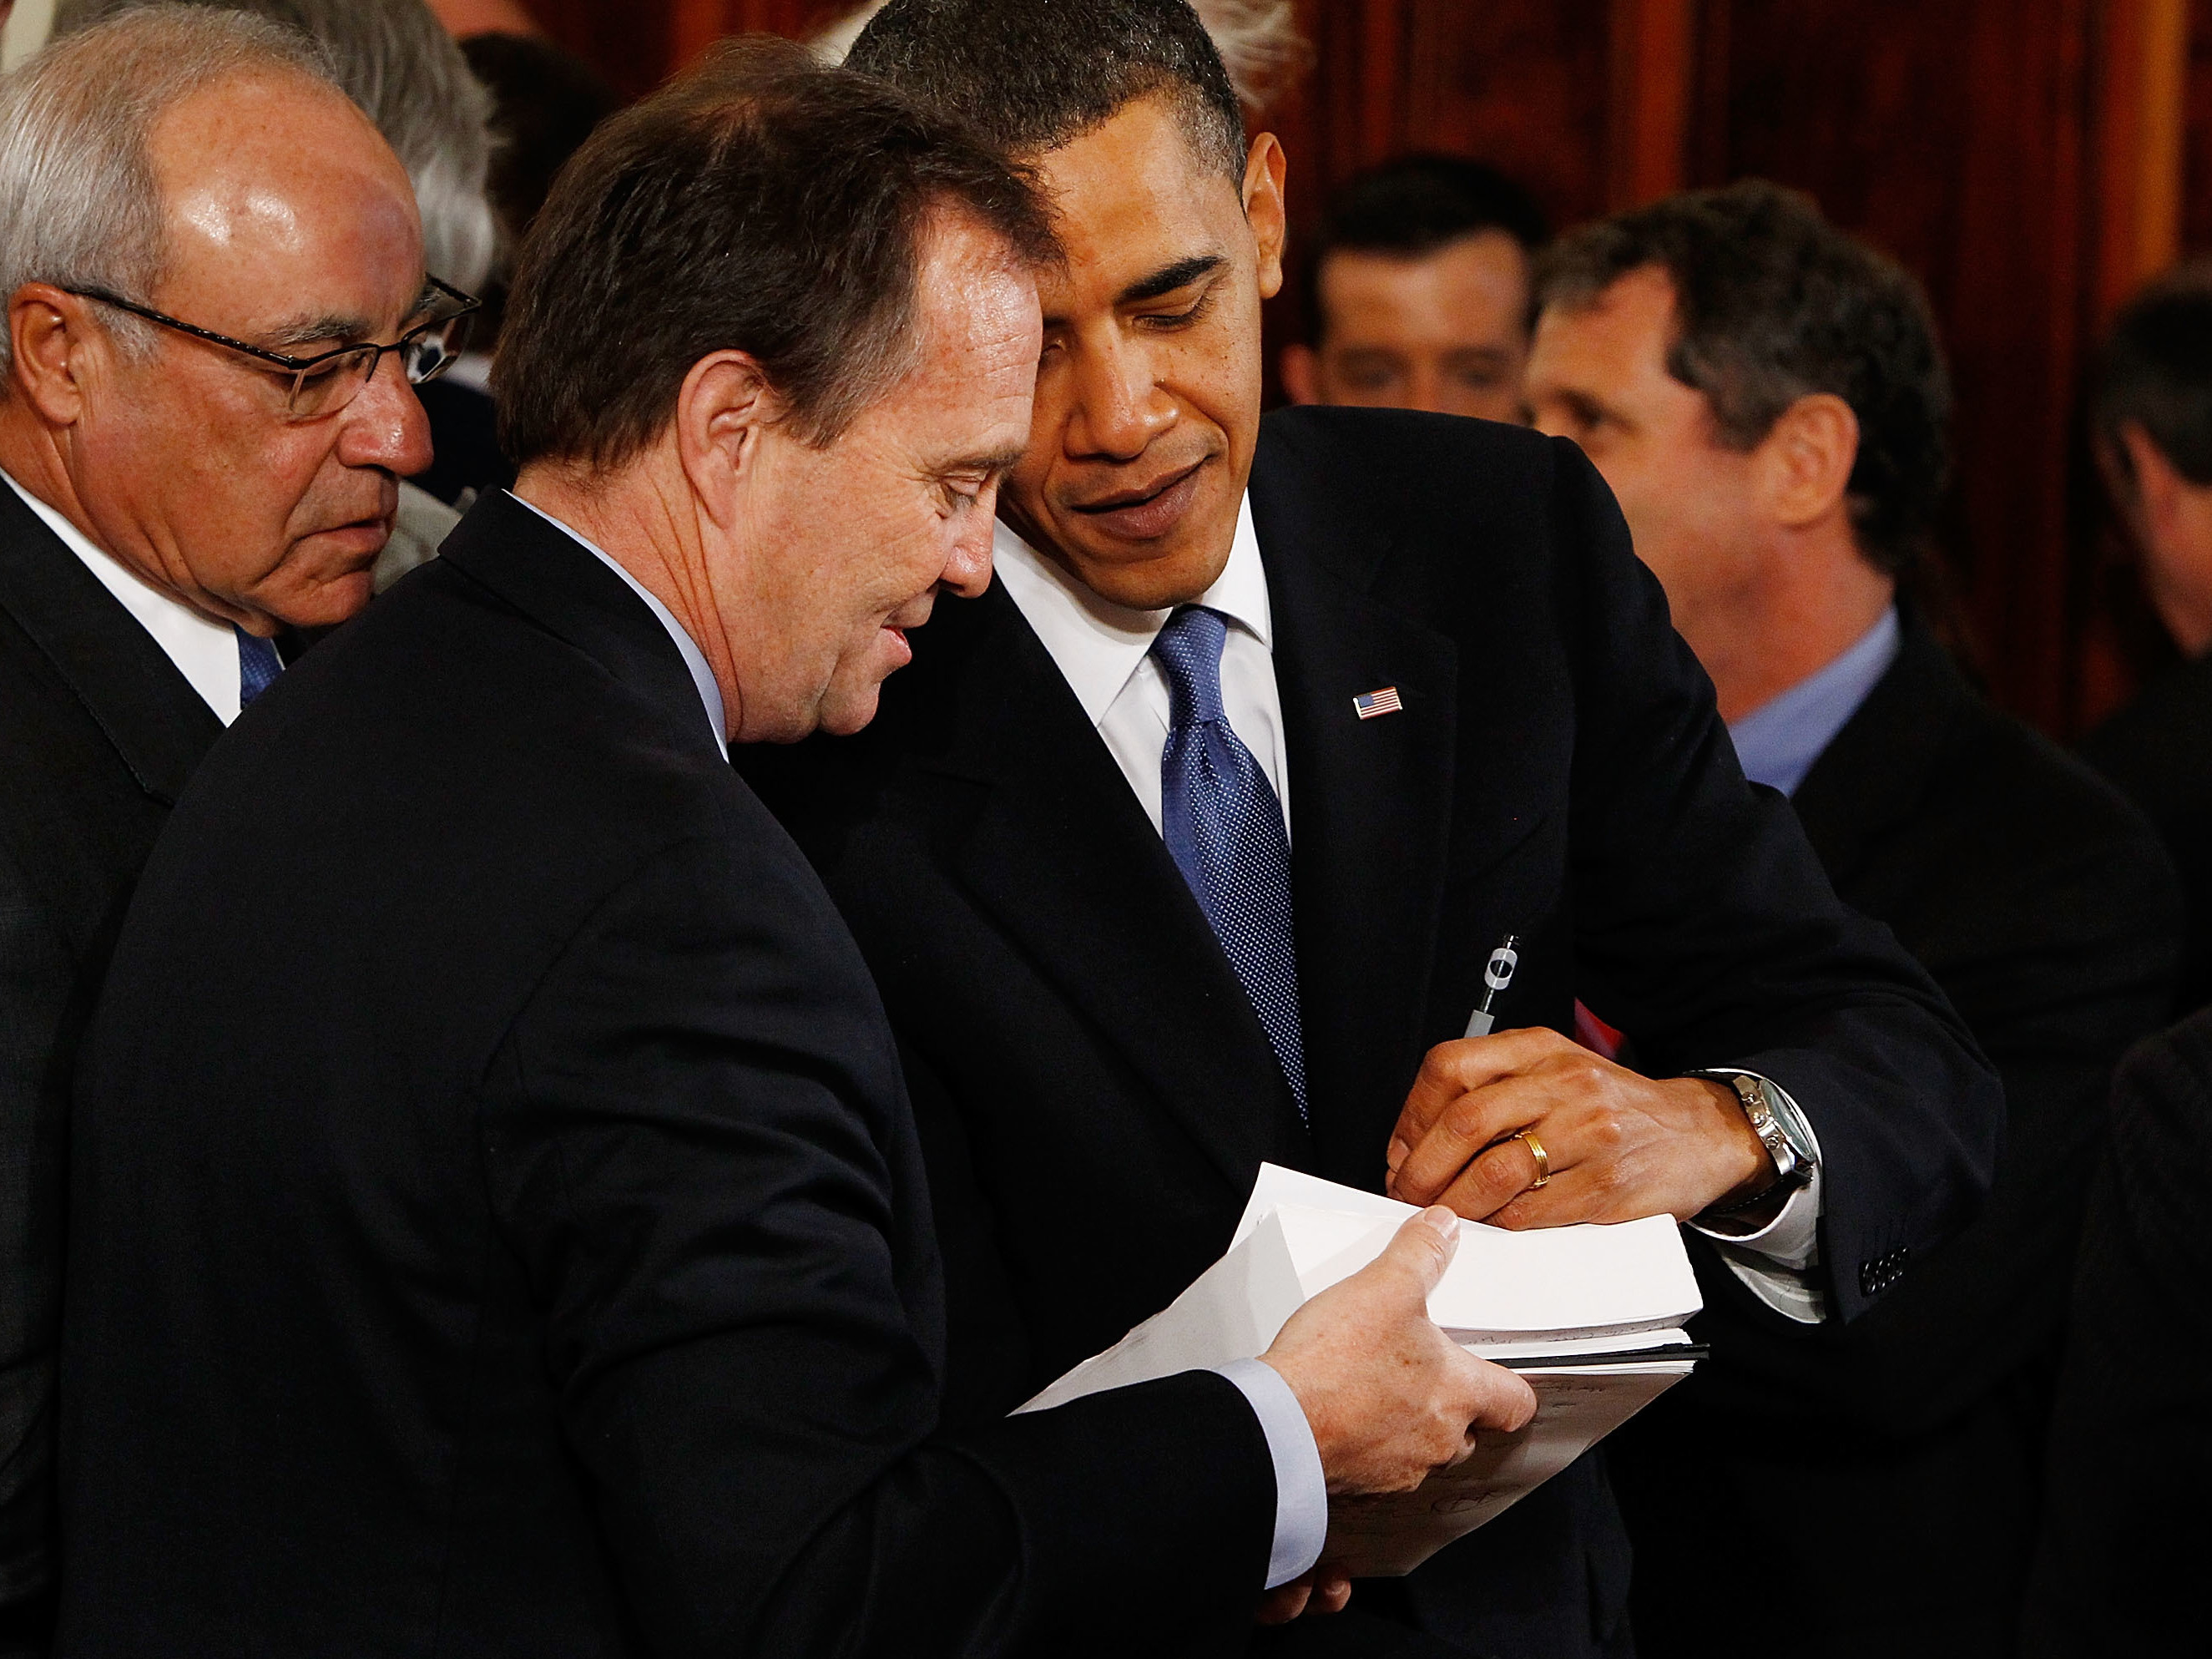 President Barack Obama signs a copy of the Affordable Health Care for America Act for a member of Congress after signing the acutual bill during a ceremony in the East Room of the White House March 23, 2010 in Washington, DC. (Chip Somodevilla/Getty Images)